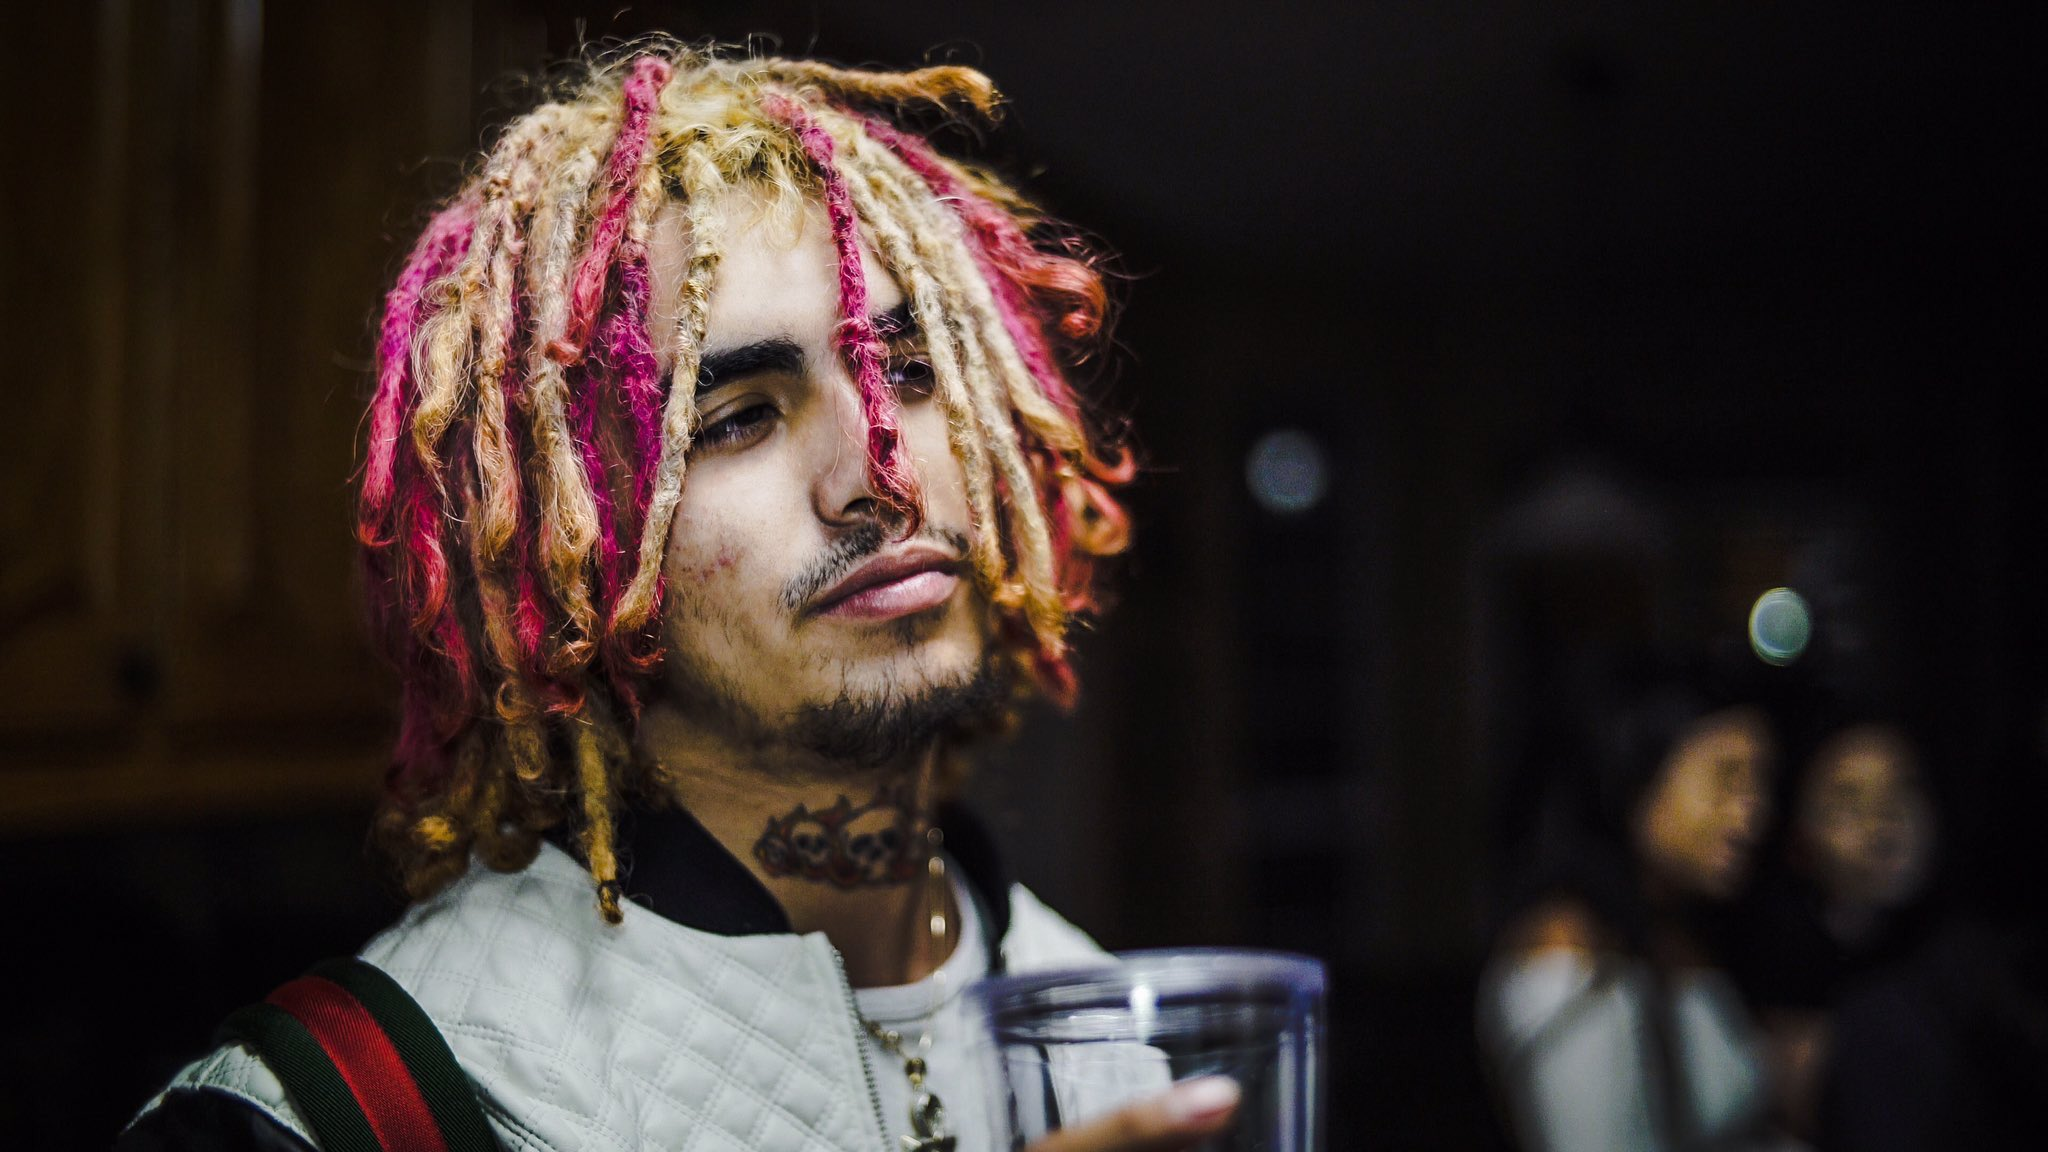 The world might not be ready for Lil Pump's 'Lil Pump Tape'